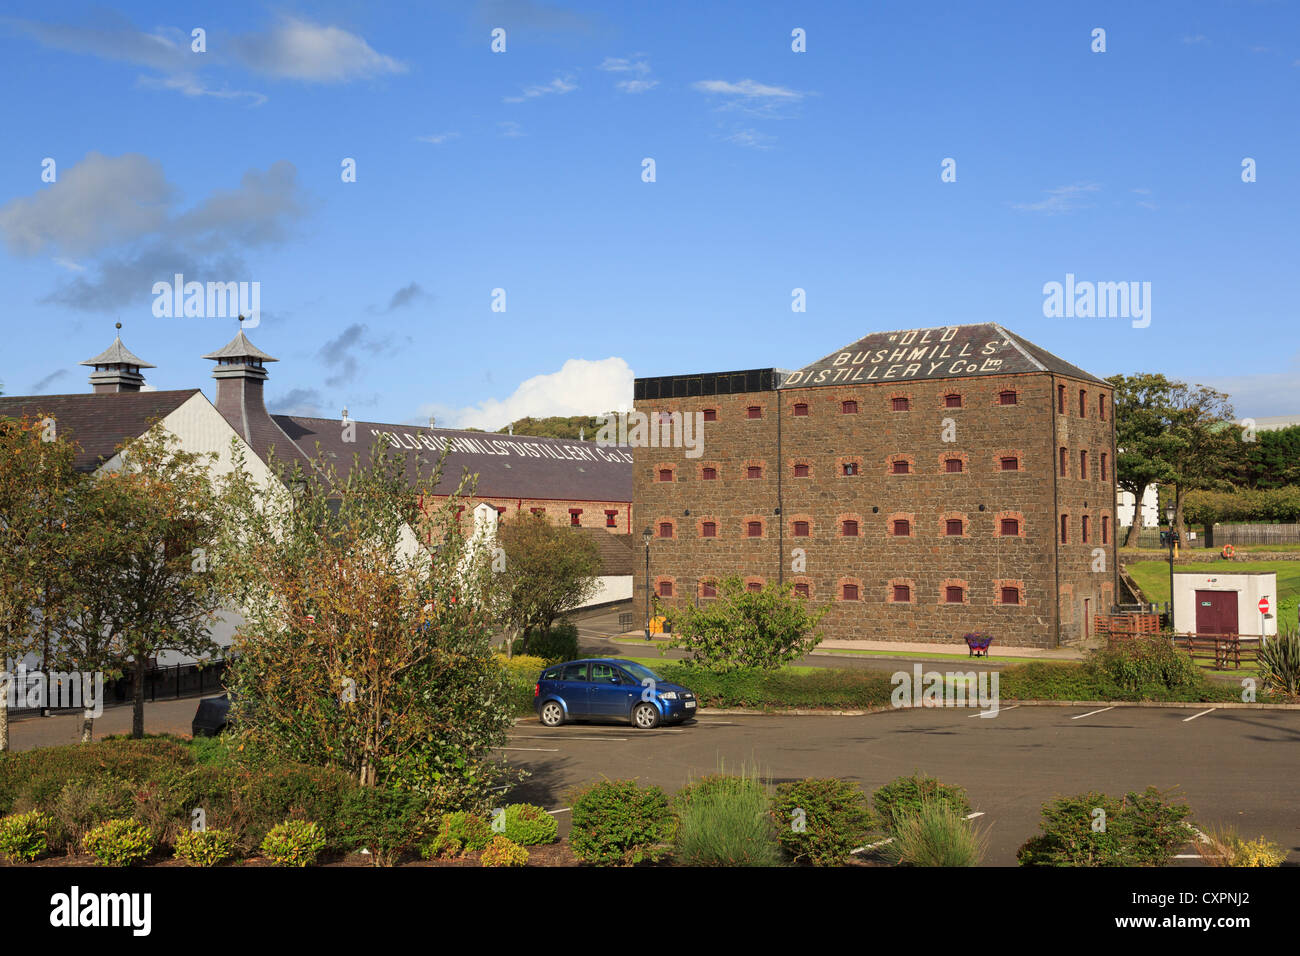 Old Bushmills Distillery Co Ltd distillers of Irish whiskey in Bushmills, County Antrim, Northern Ireland, UK - Stock Image